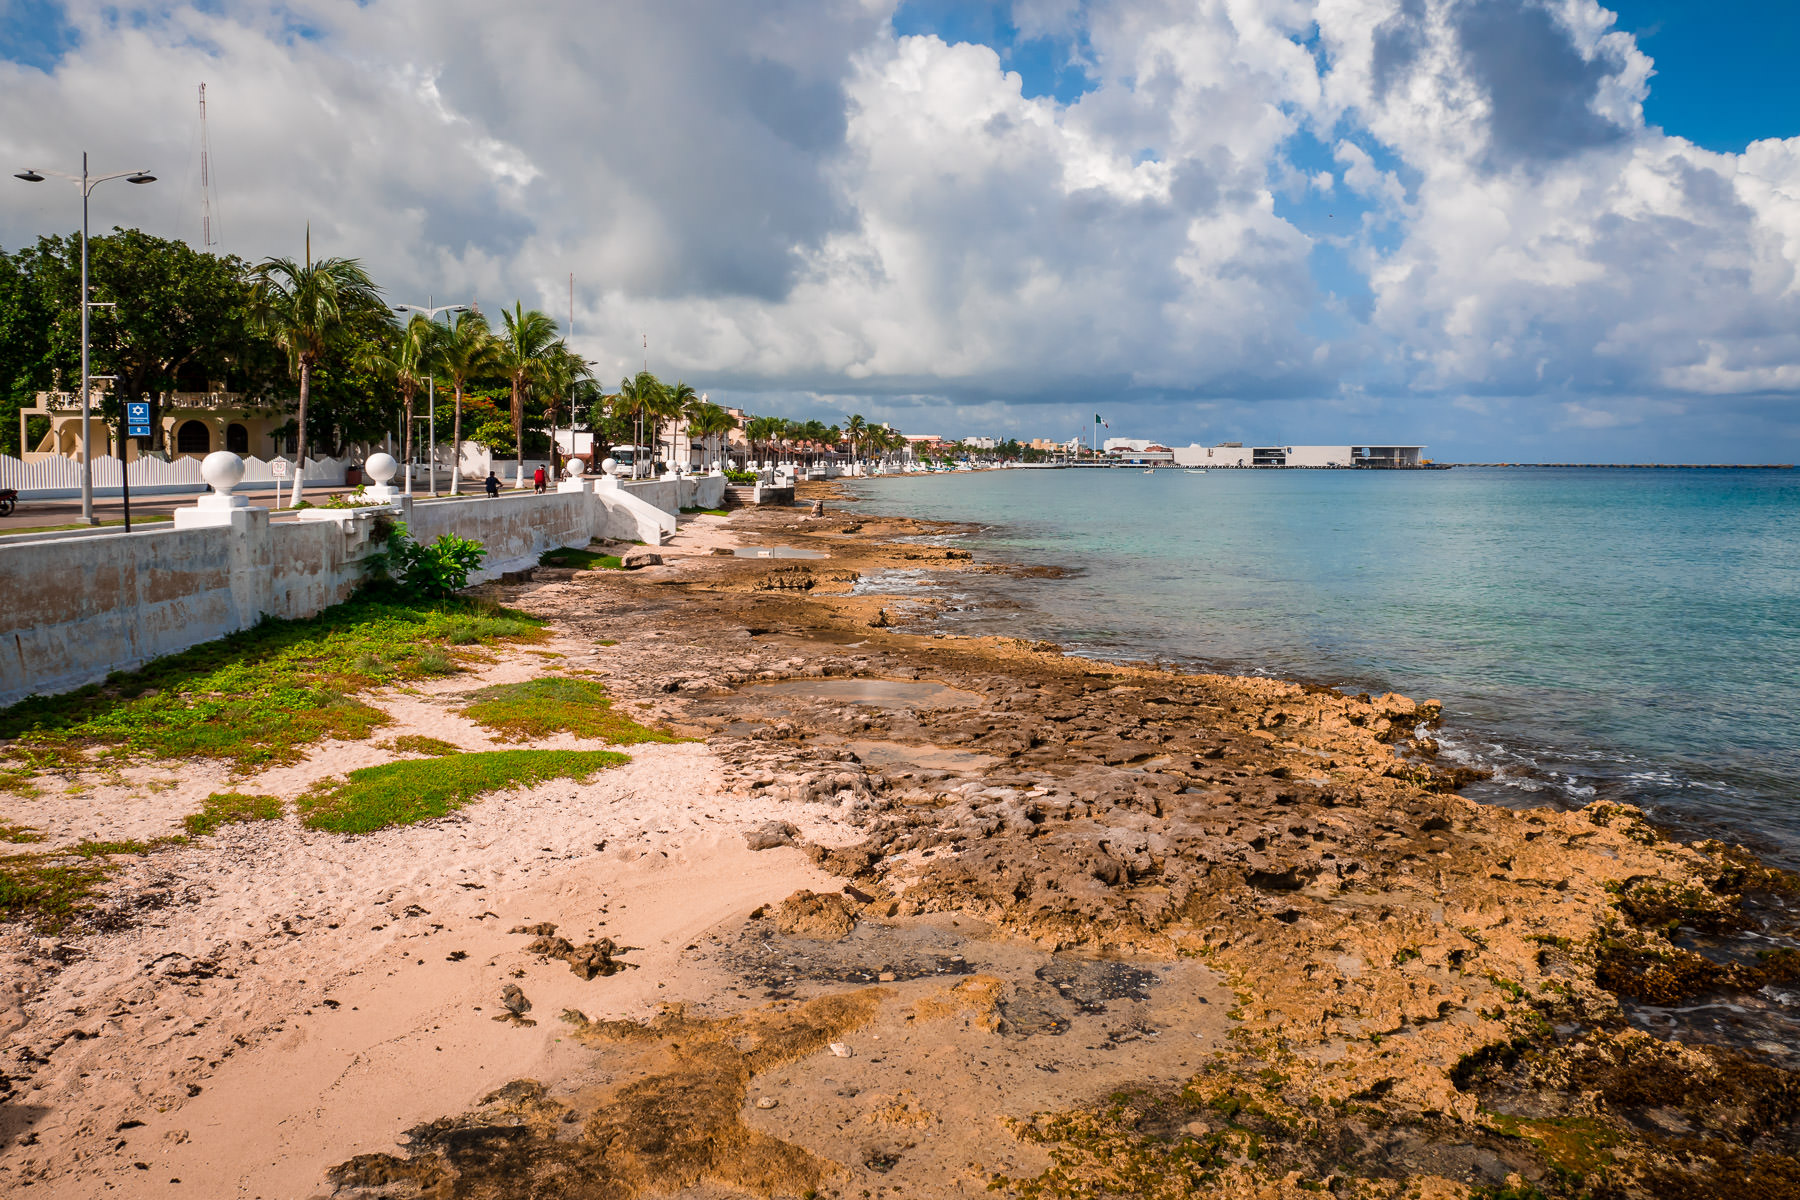 The sea lazily laps at the rocky shore along the Malecón in San Miguel, Cozumel, Mexico.